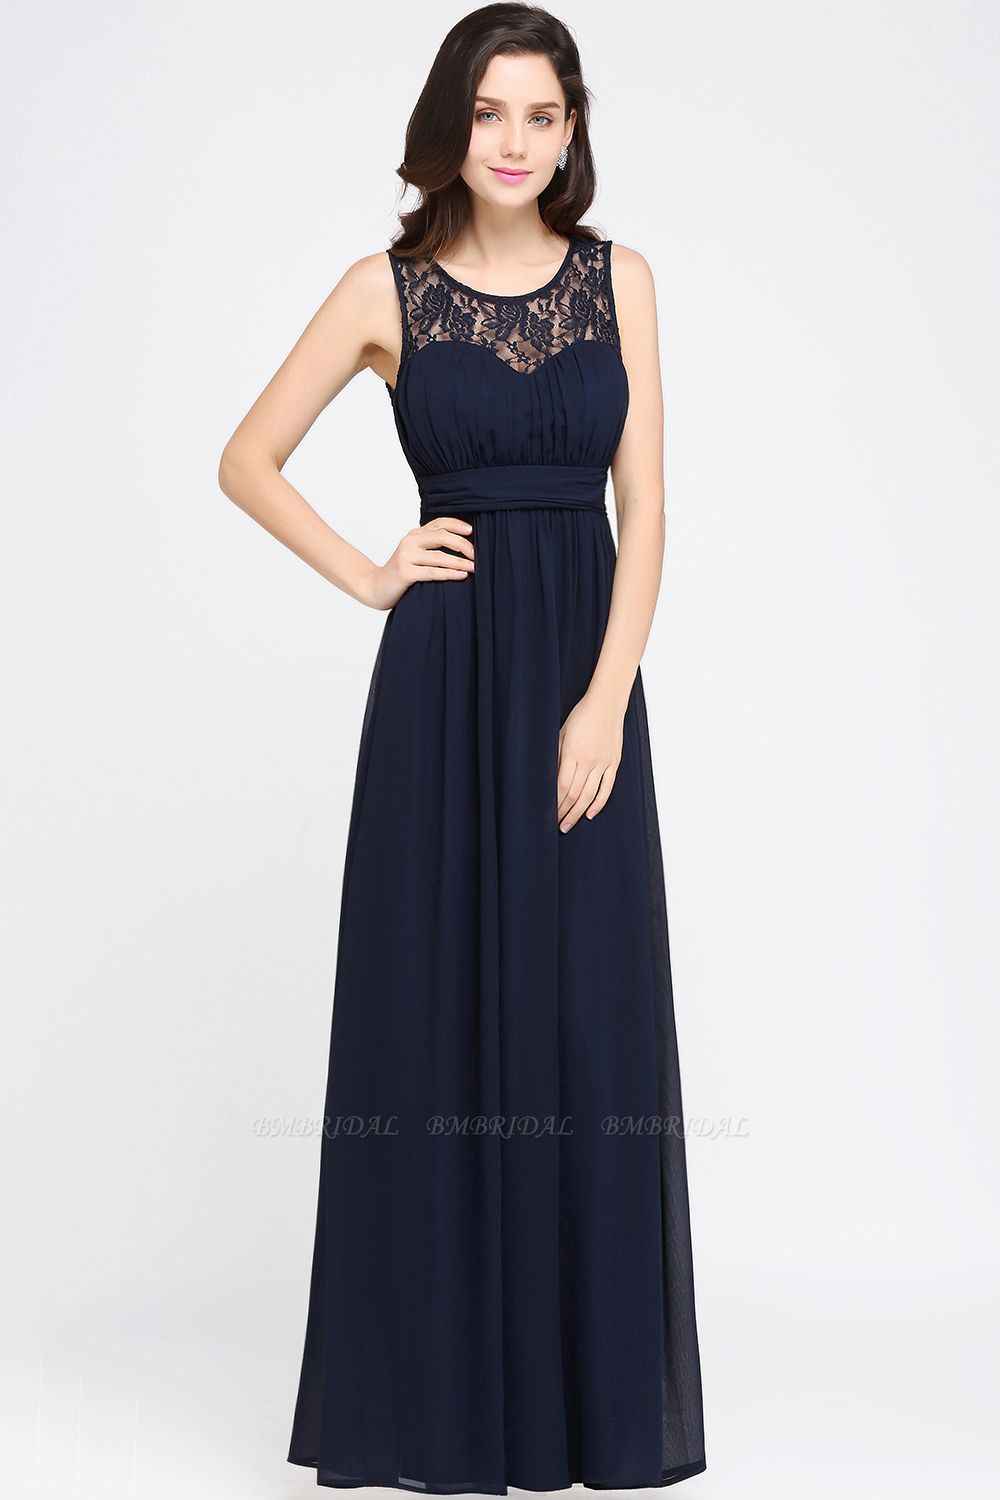 Affordable Chiffon Jewel Sleeveless Lace Bridesmaid Dress Online with Ruffle